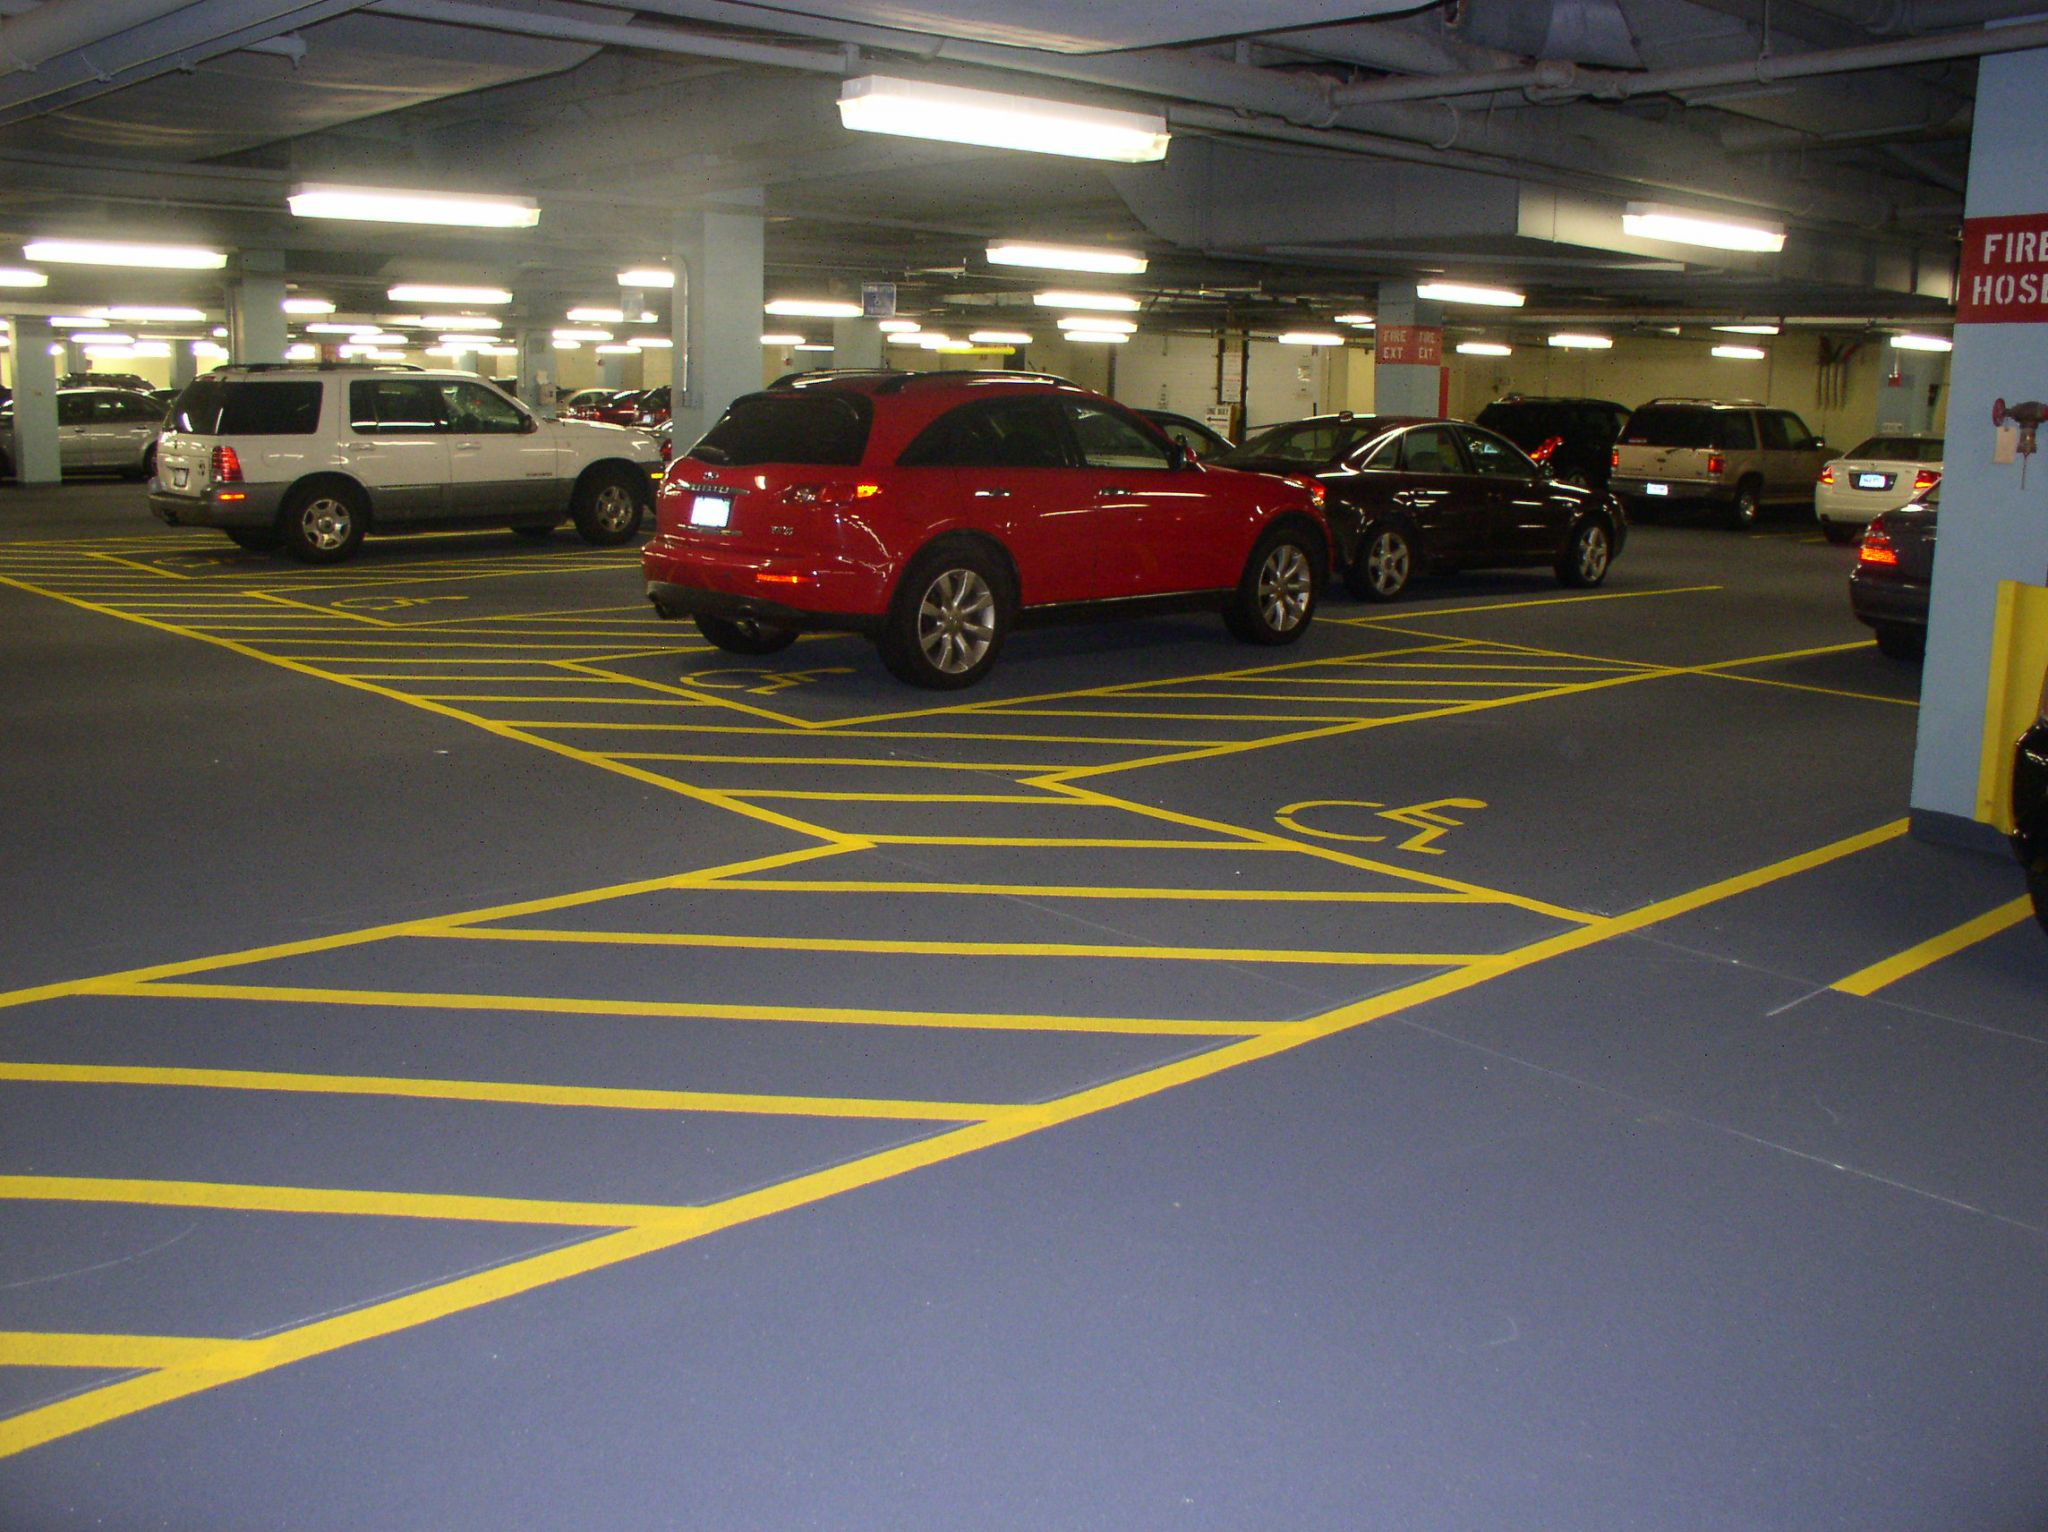 Epoxy Garage Floor Expansion Joints Don T Seal Your Fate Considerations For Parking Garage Surface